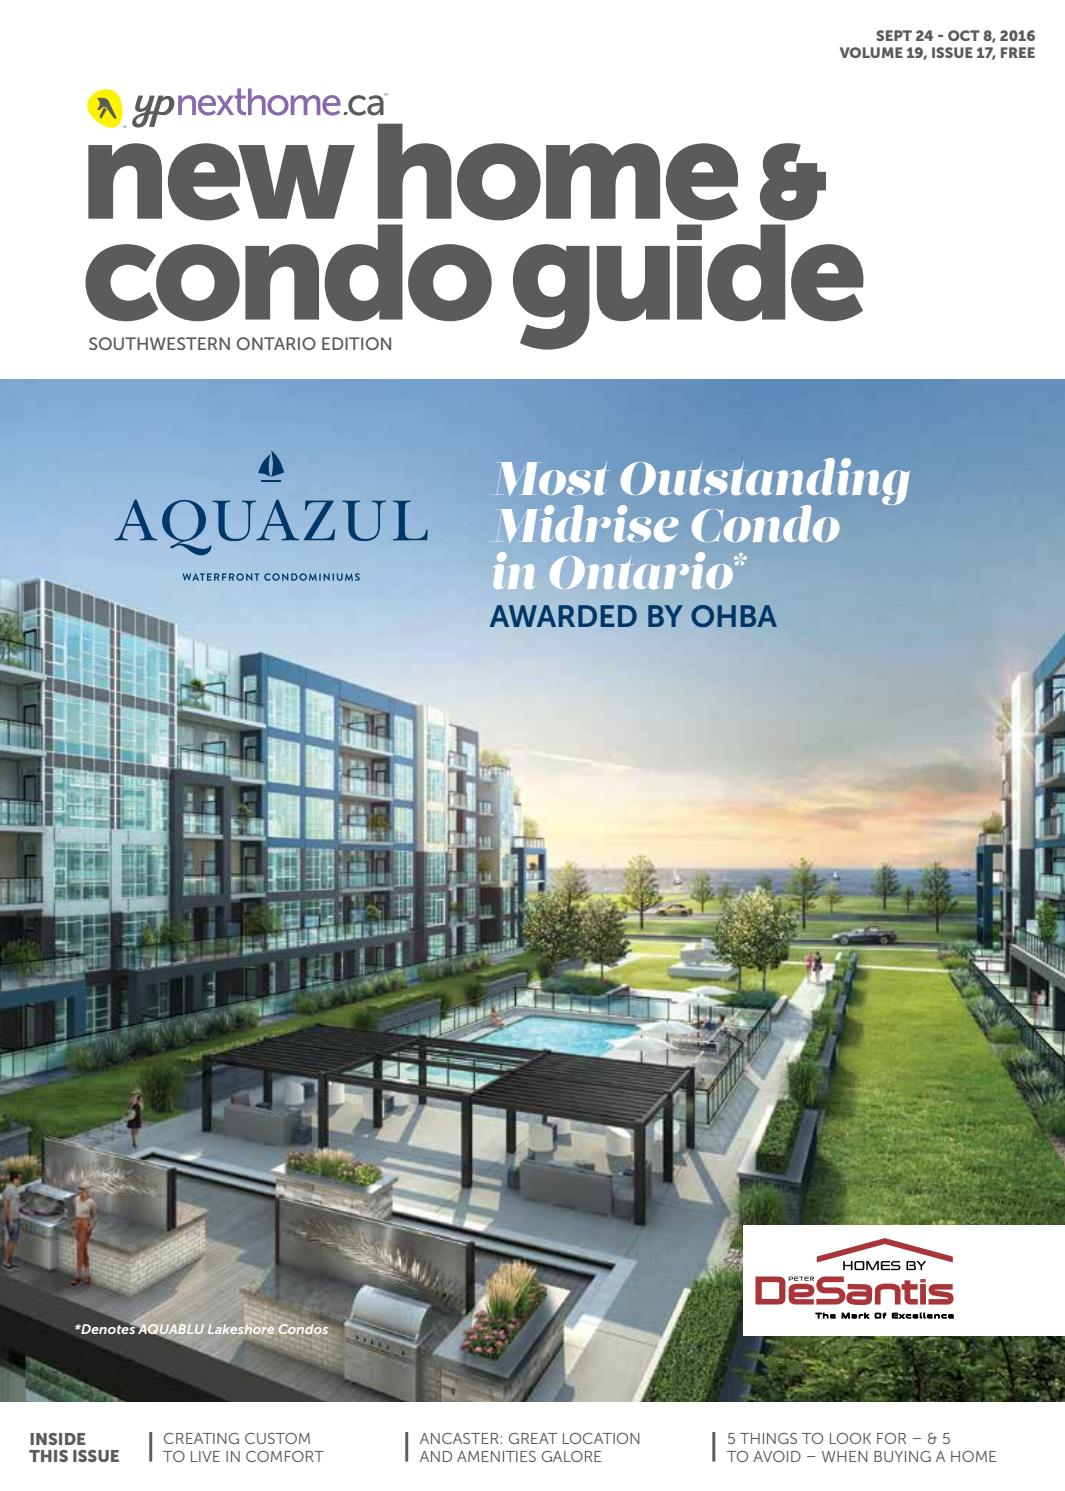 Southwestern Ontario New Home and Condo Guide - Sept 24, 2016 by ...